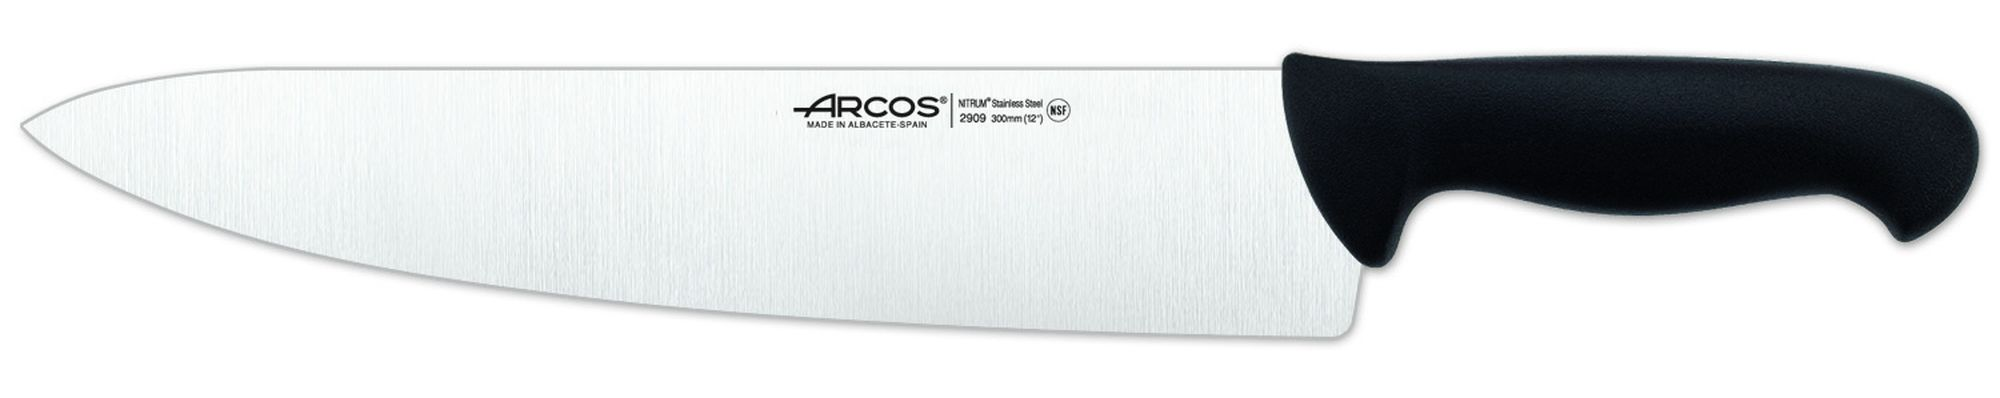 Chef's Knife Arcos ref.: 290925